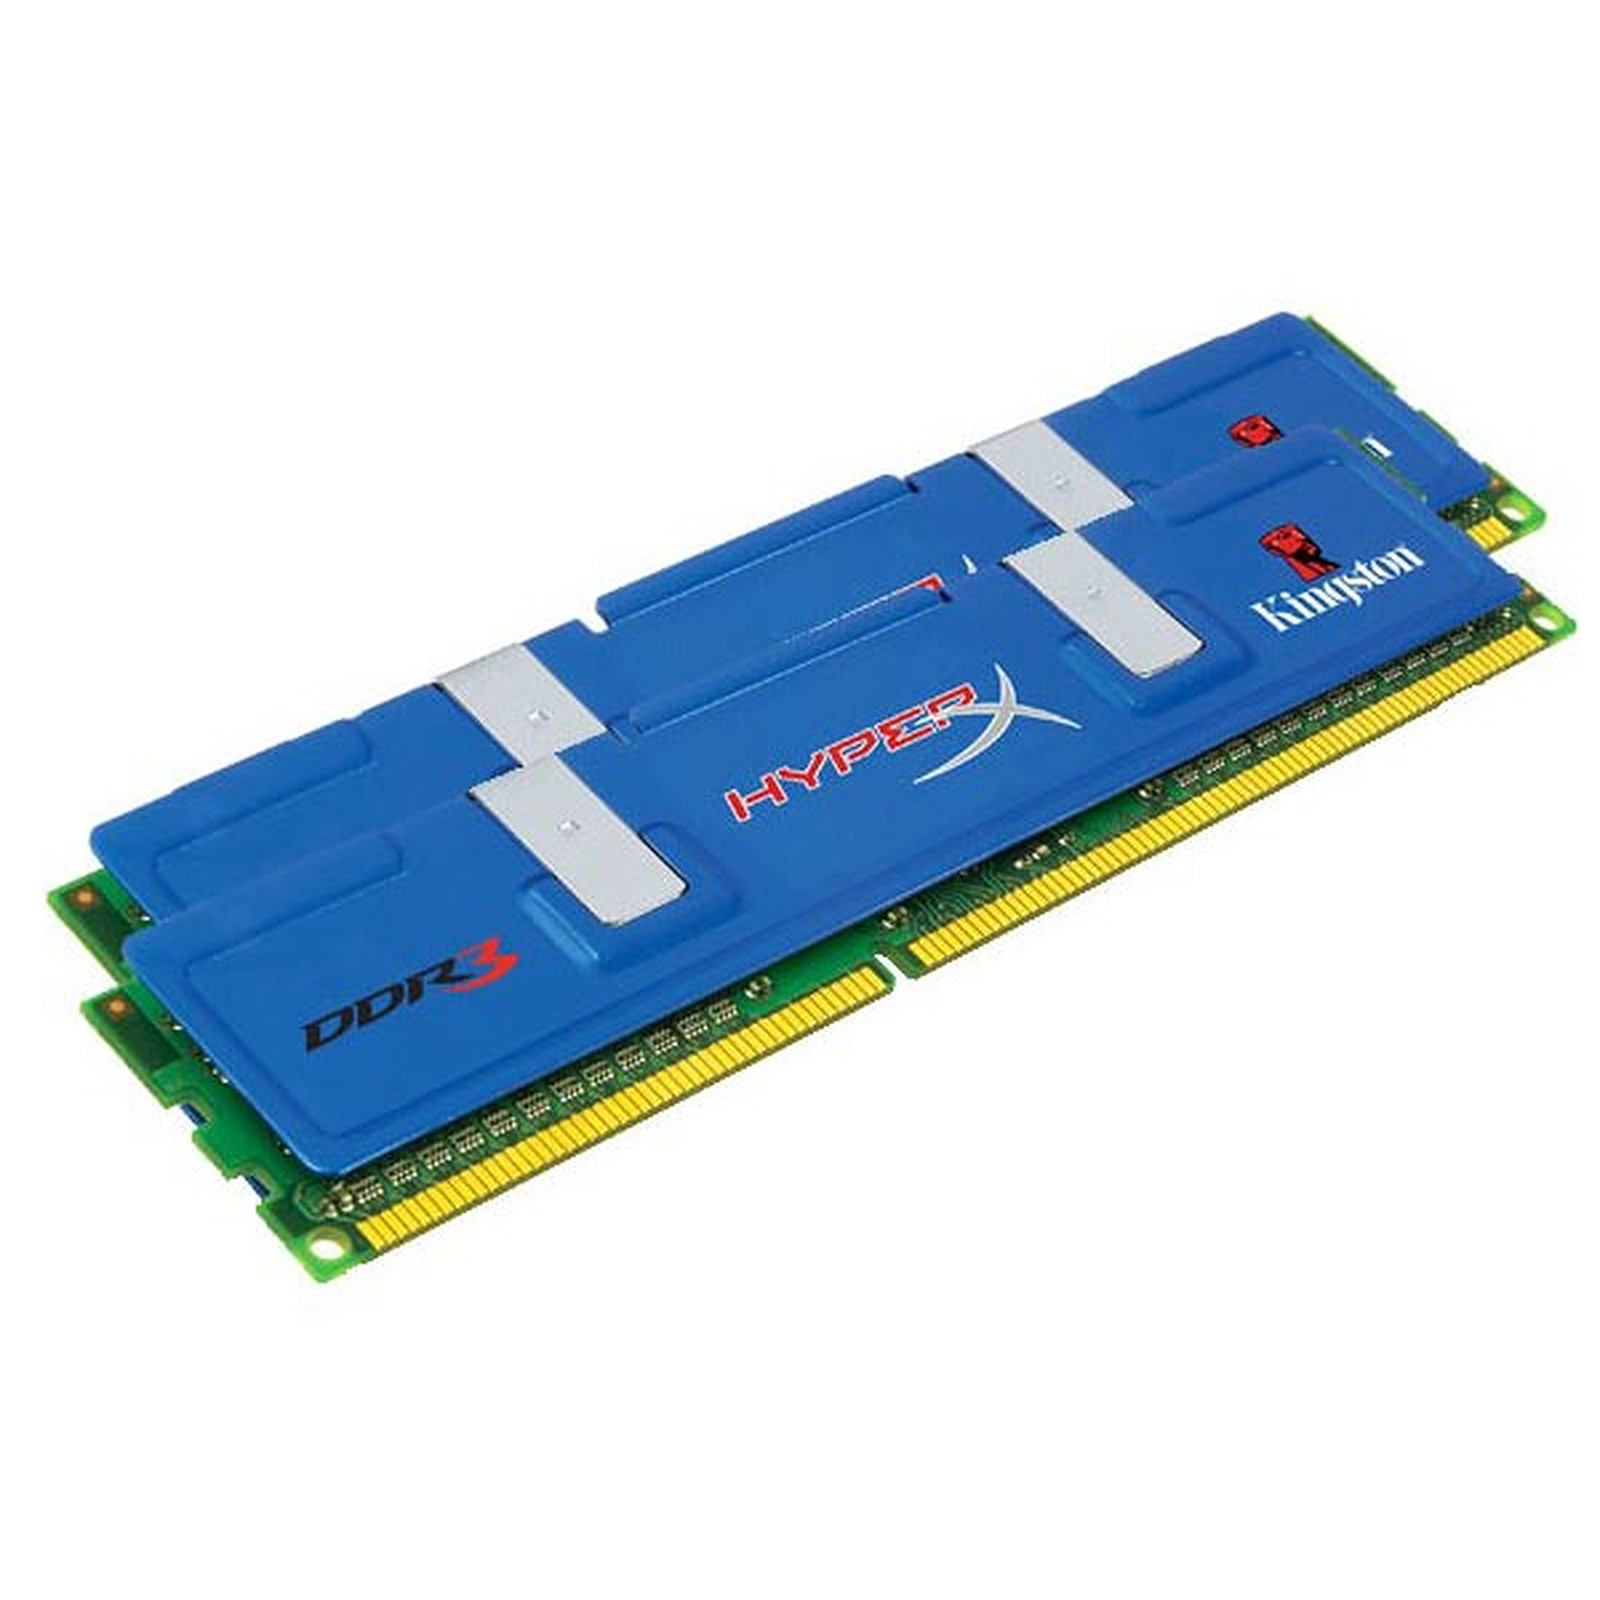 Kingston HyperX 2 Go (2x 1Go) DDR3 1800 MHz